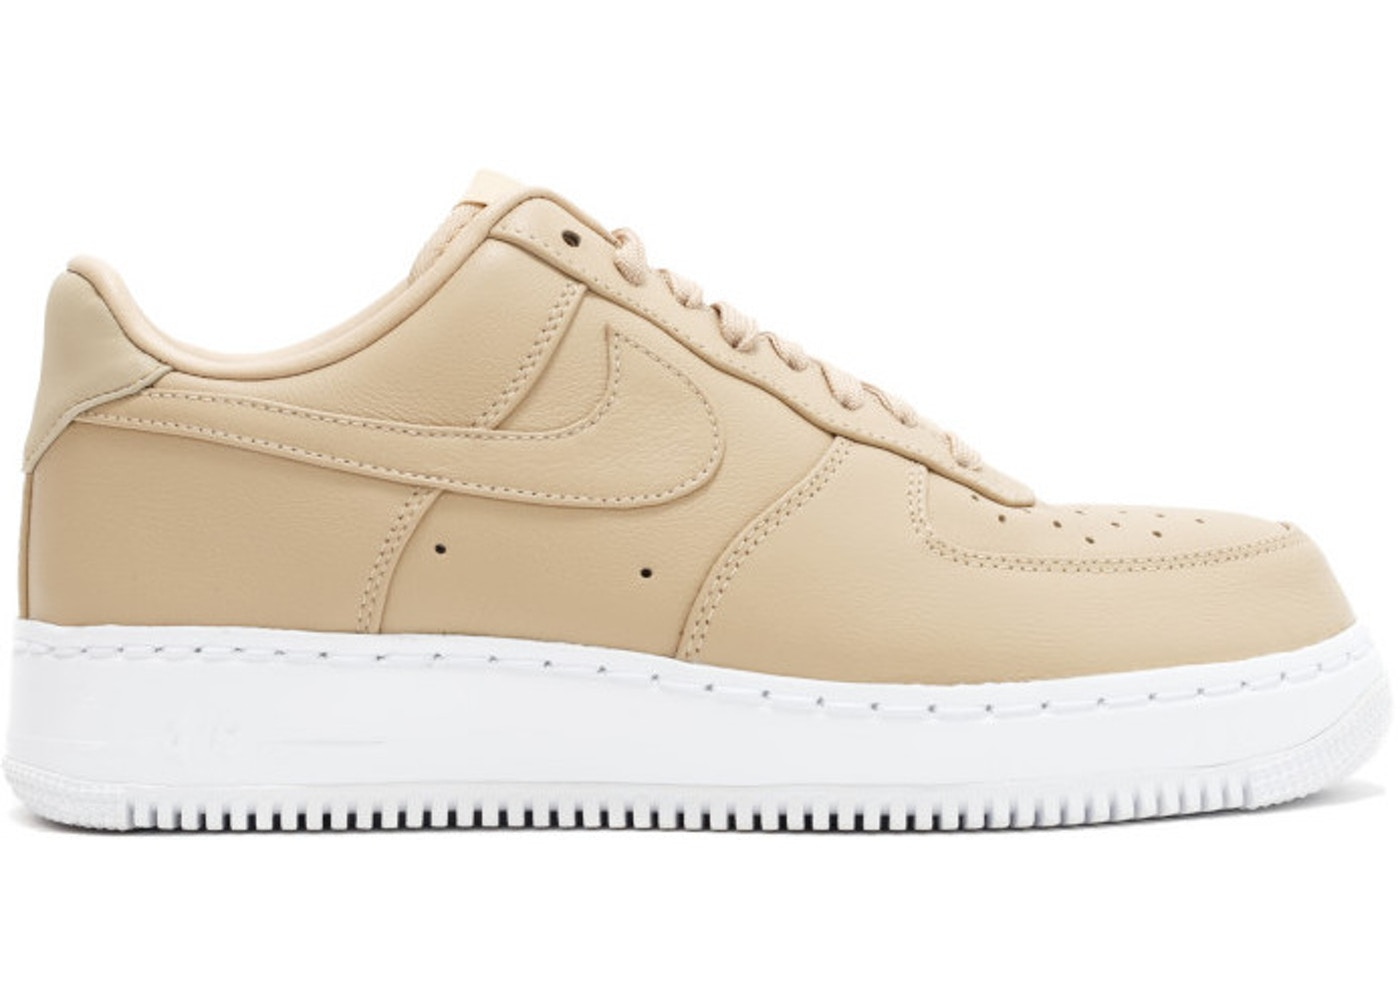 lowest price 2da3e 59281 Air Force 1 Low Vachetta Tan - 555106-200